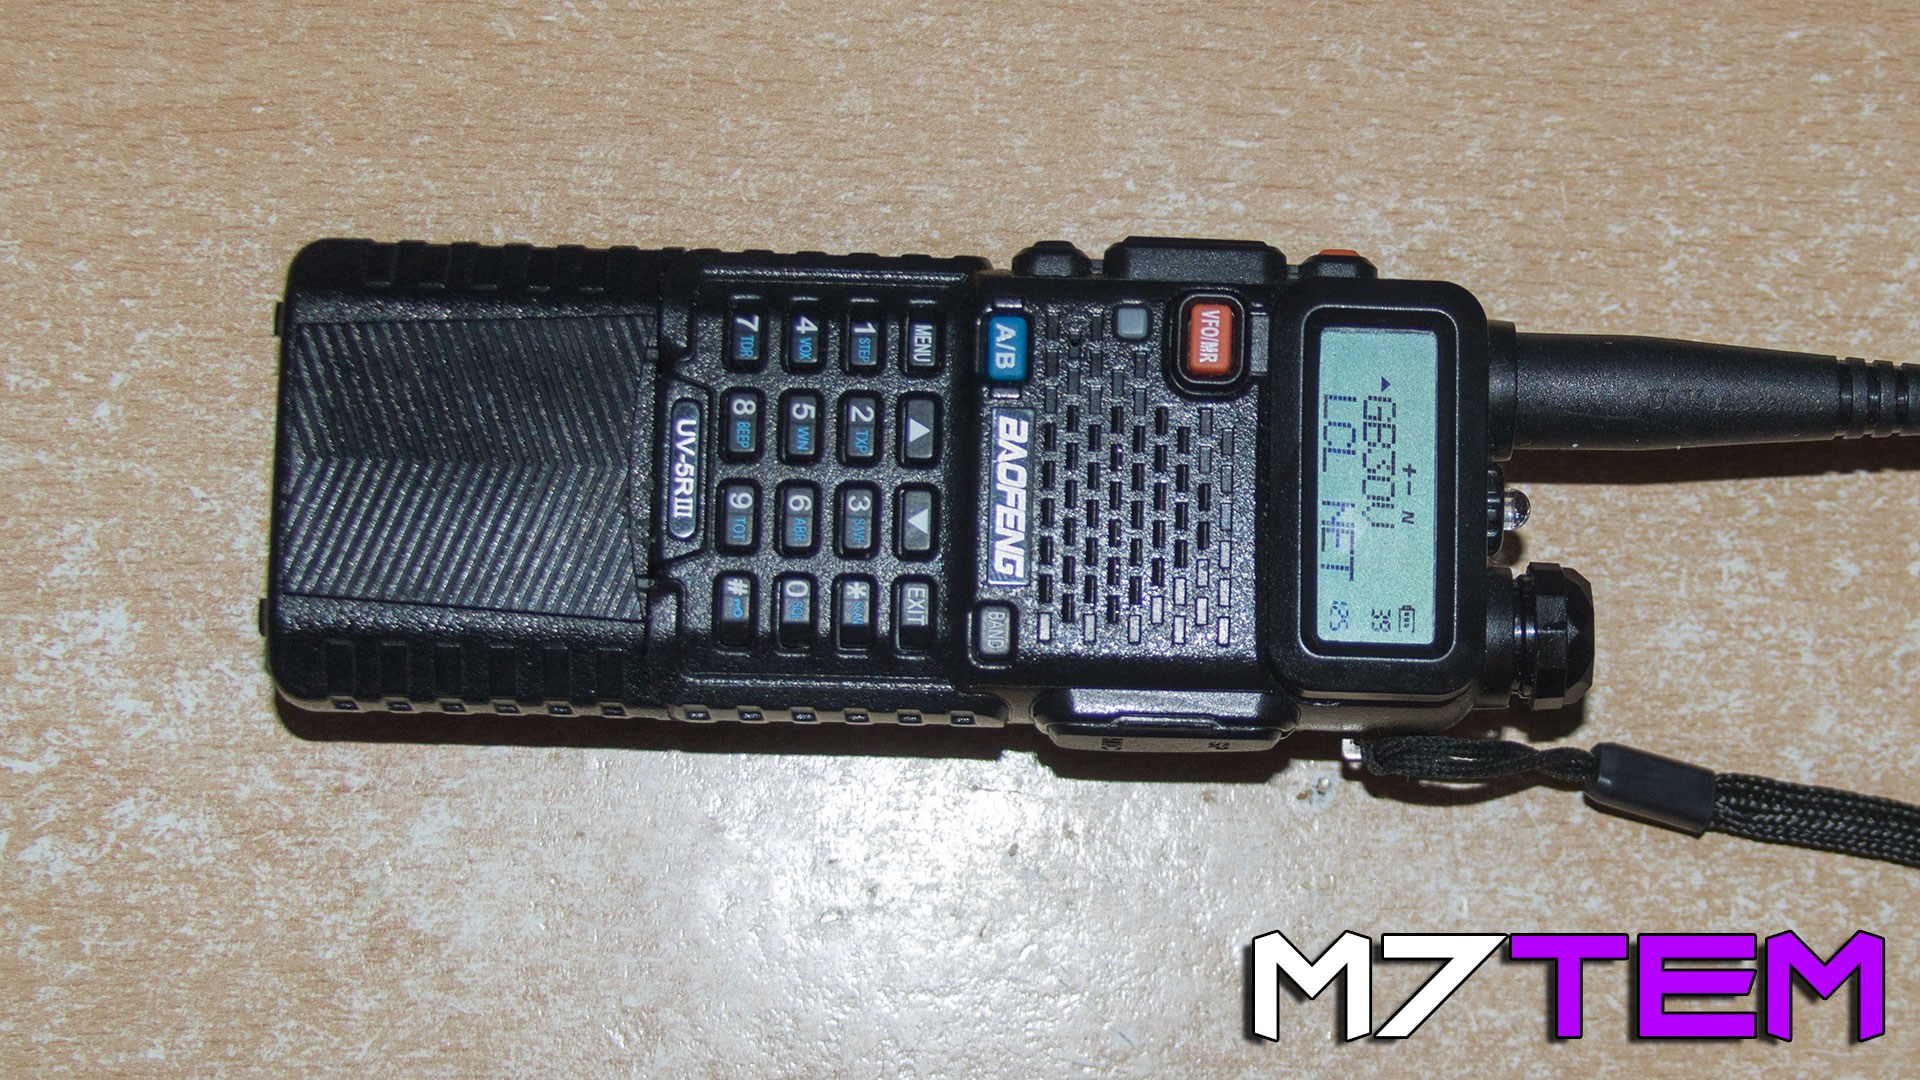 Picture of the UV-5R by Baofeng.